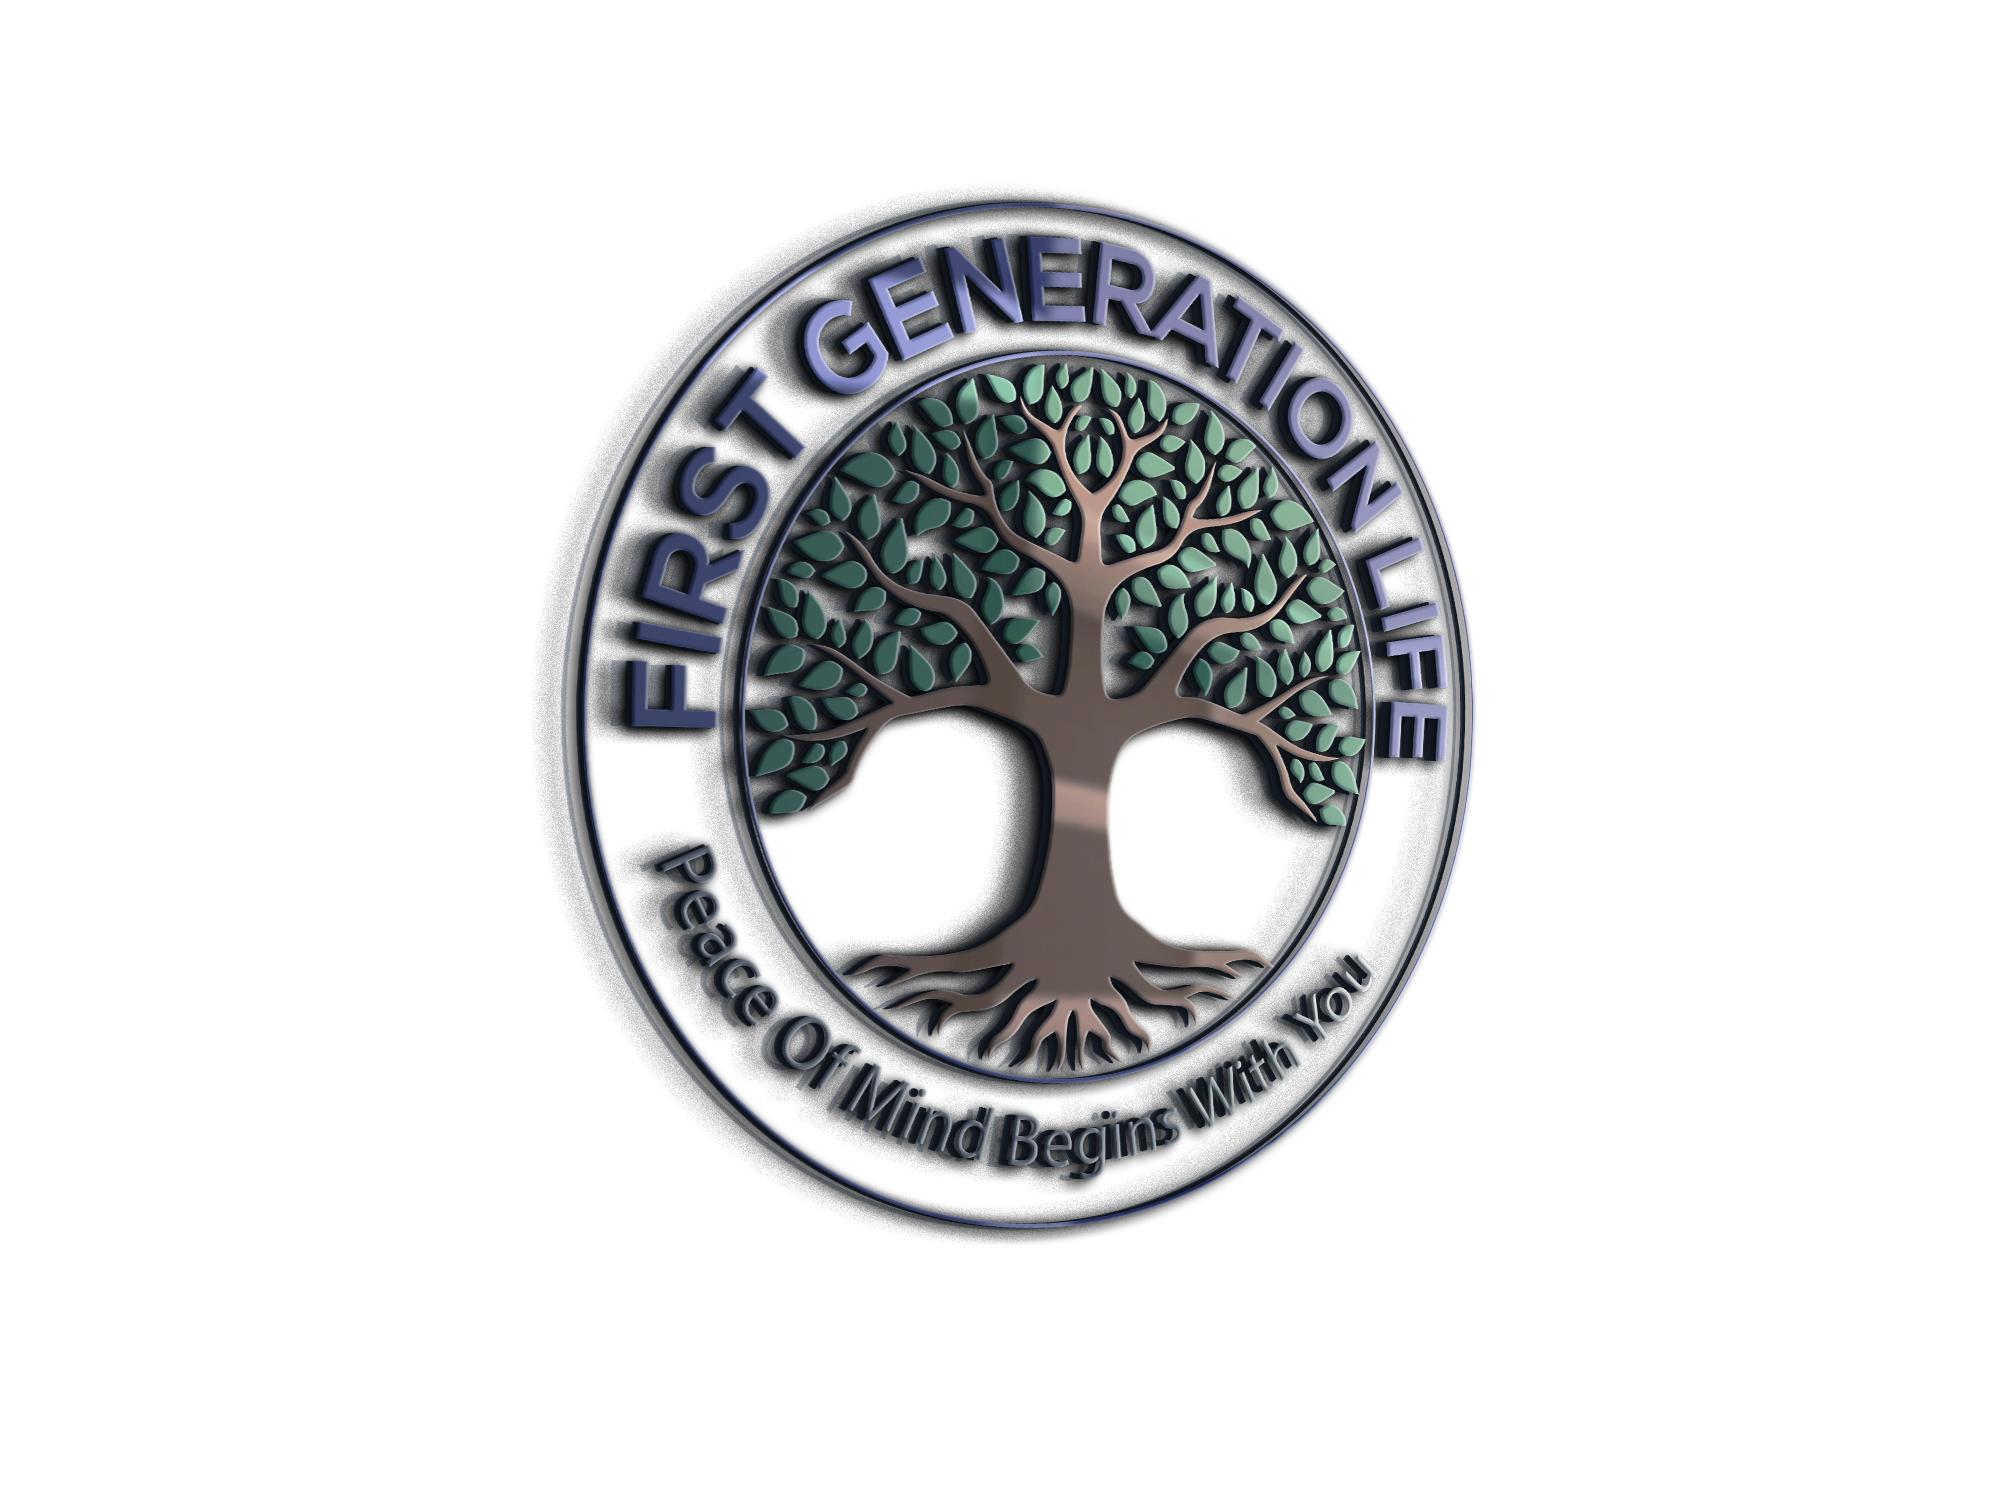 First Generation Life